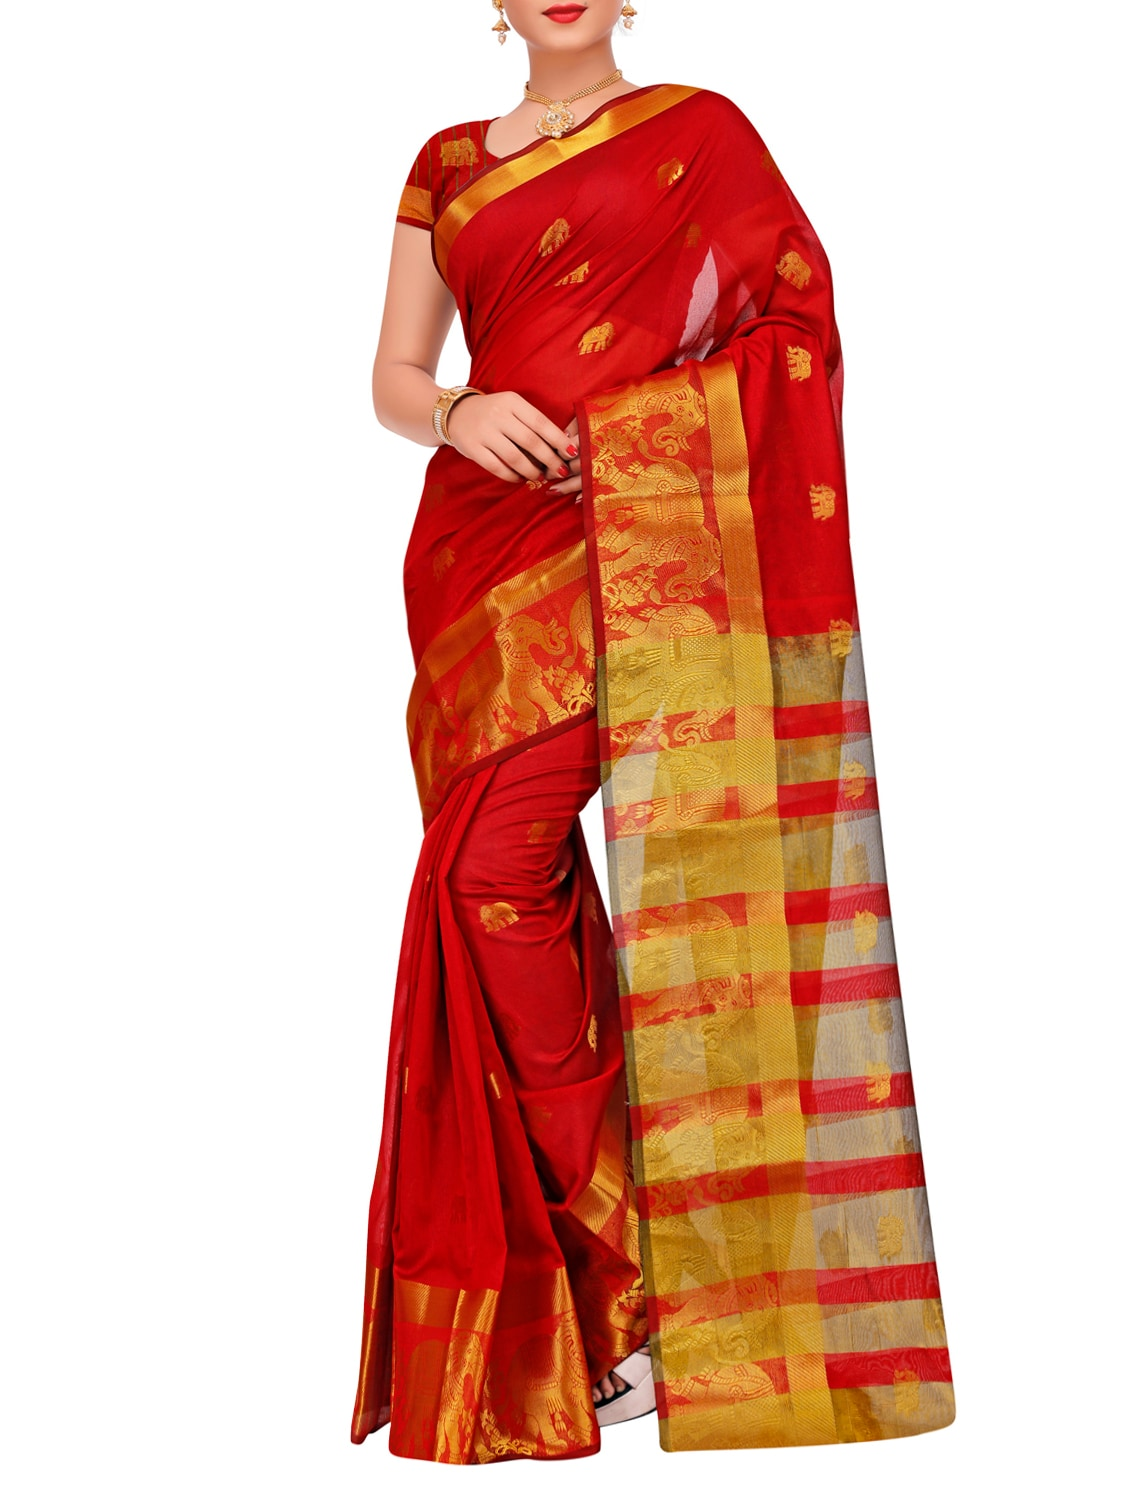 526134db52844a Buy Zari Woven Banarasi Saree With Blouse by Justfashion - Online shopping  for Sarees in India